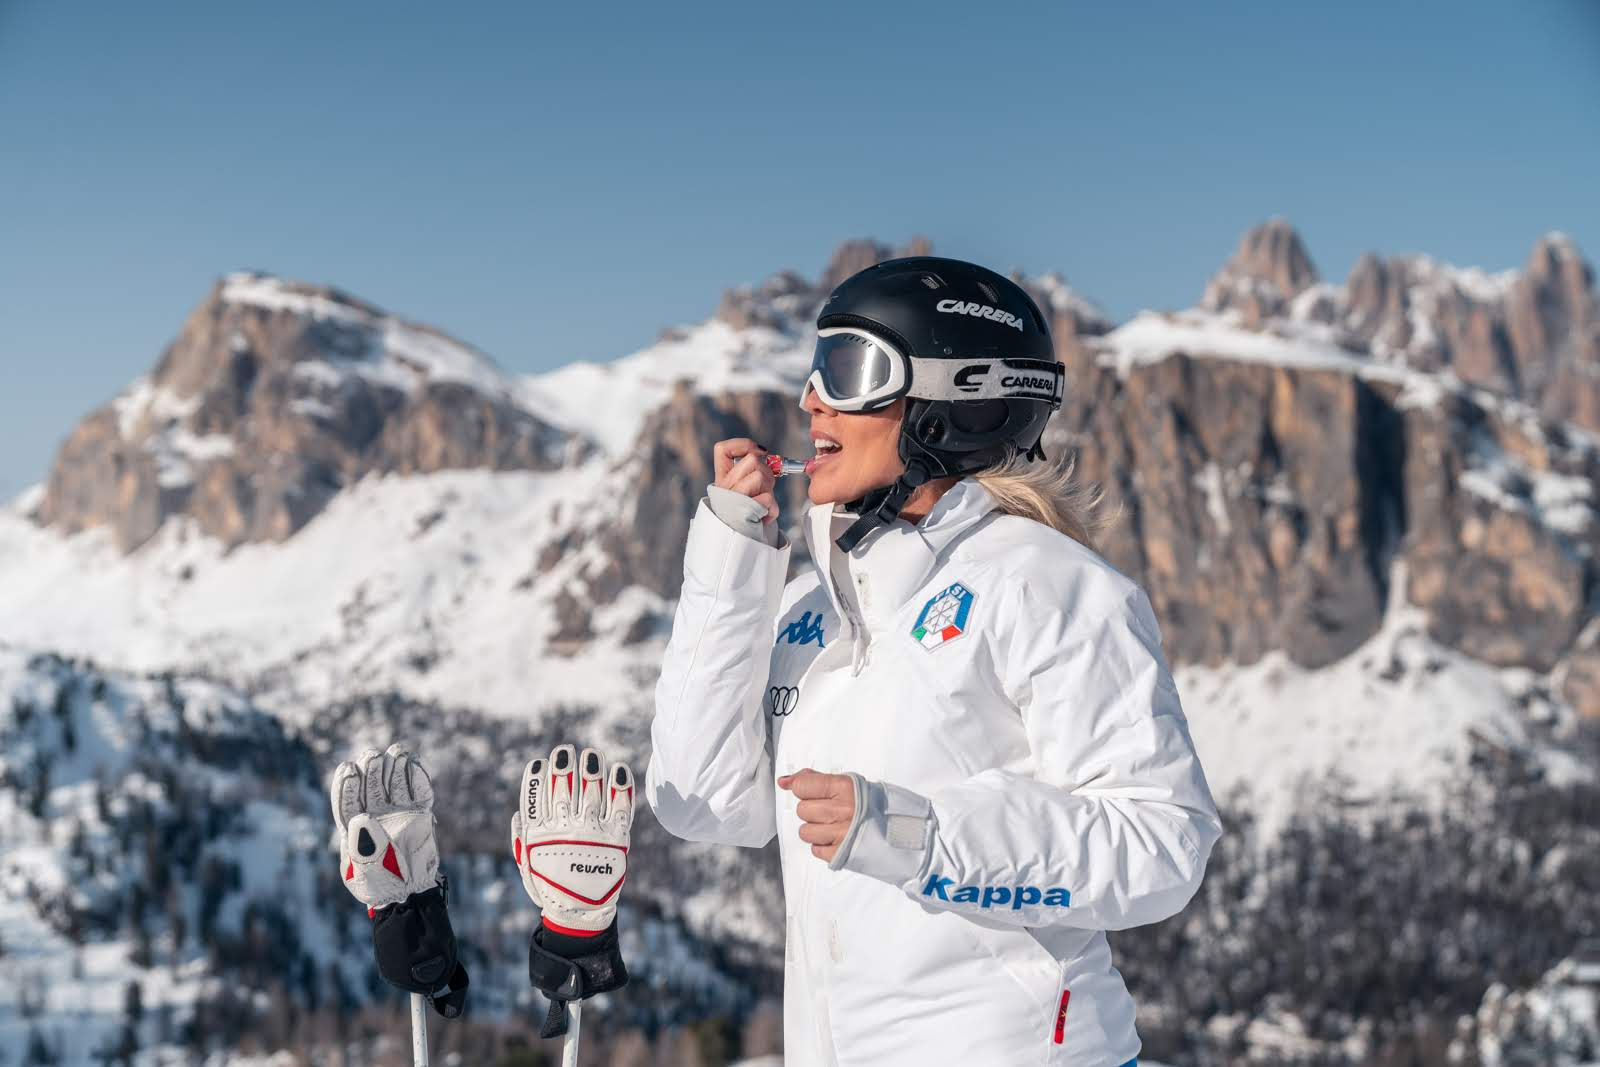 The Locandiera Elisabetta Dotto of Hotel Ambra Cortina tells us about the latest fashion trends for skiing in Cortina